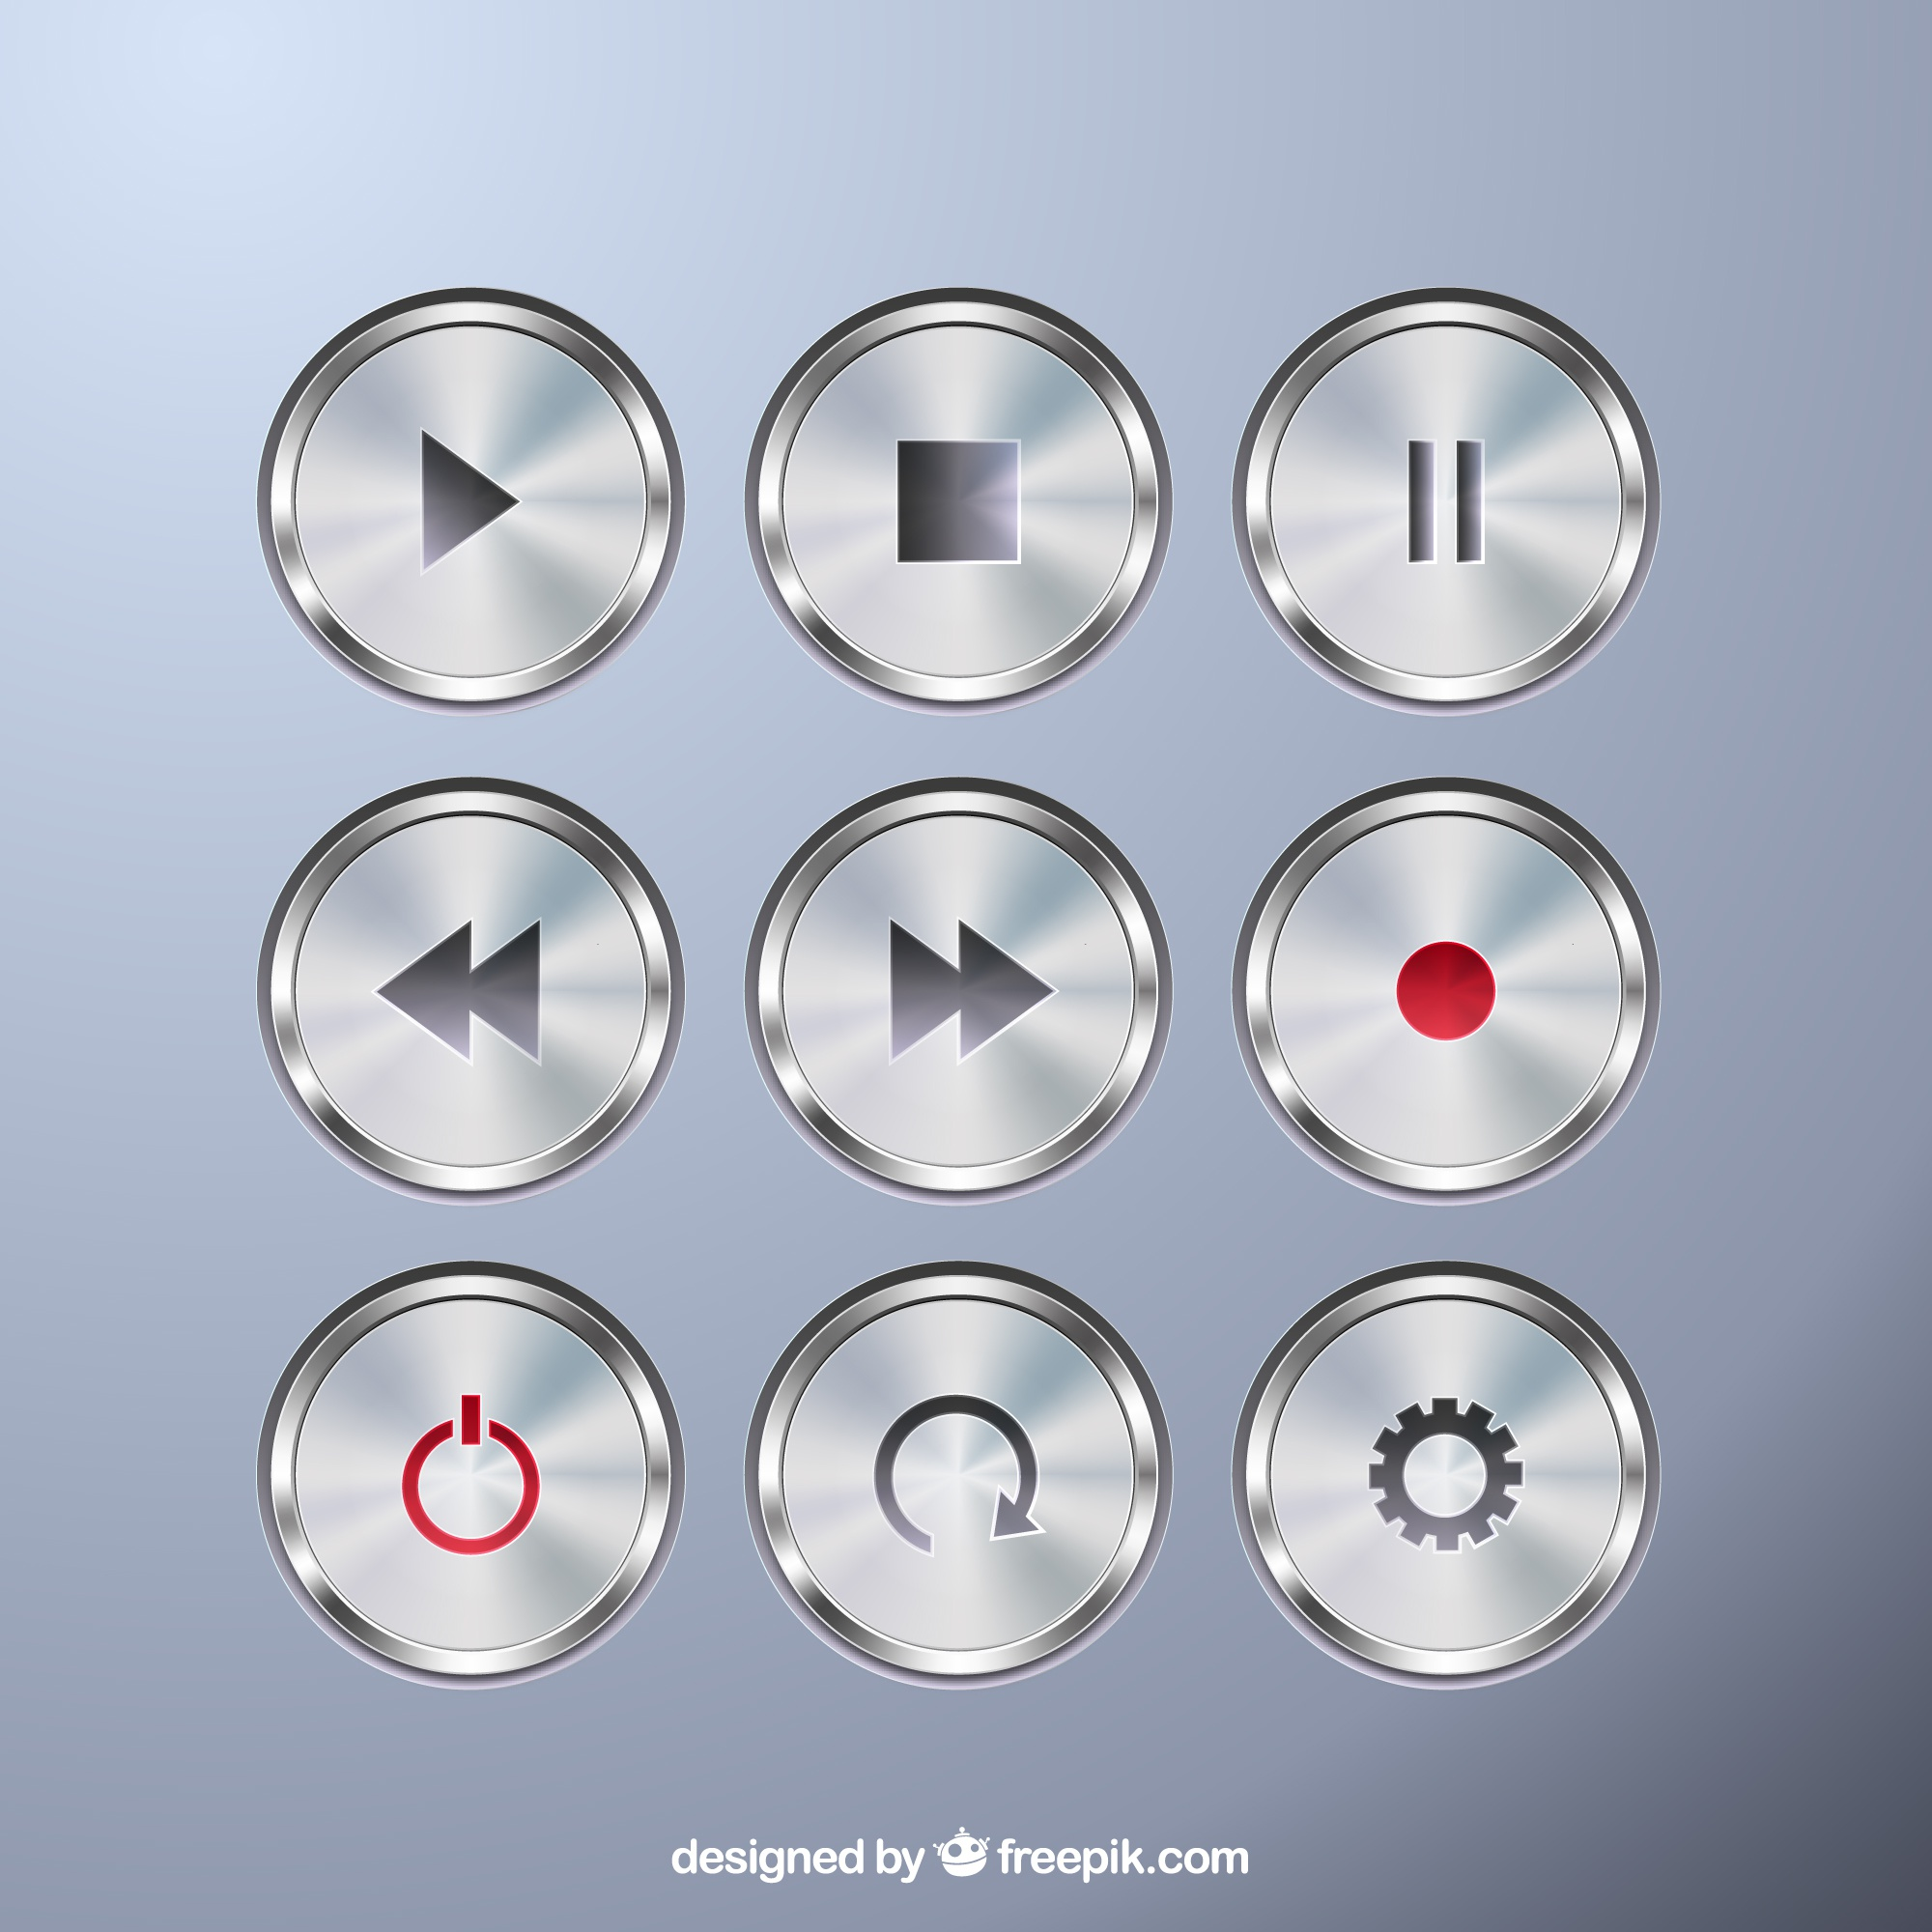 Metallic buttons collection